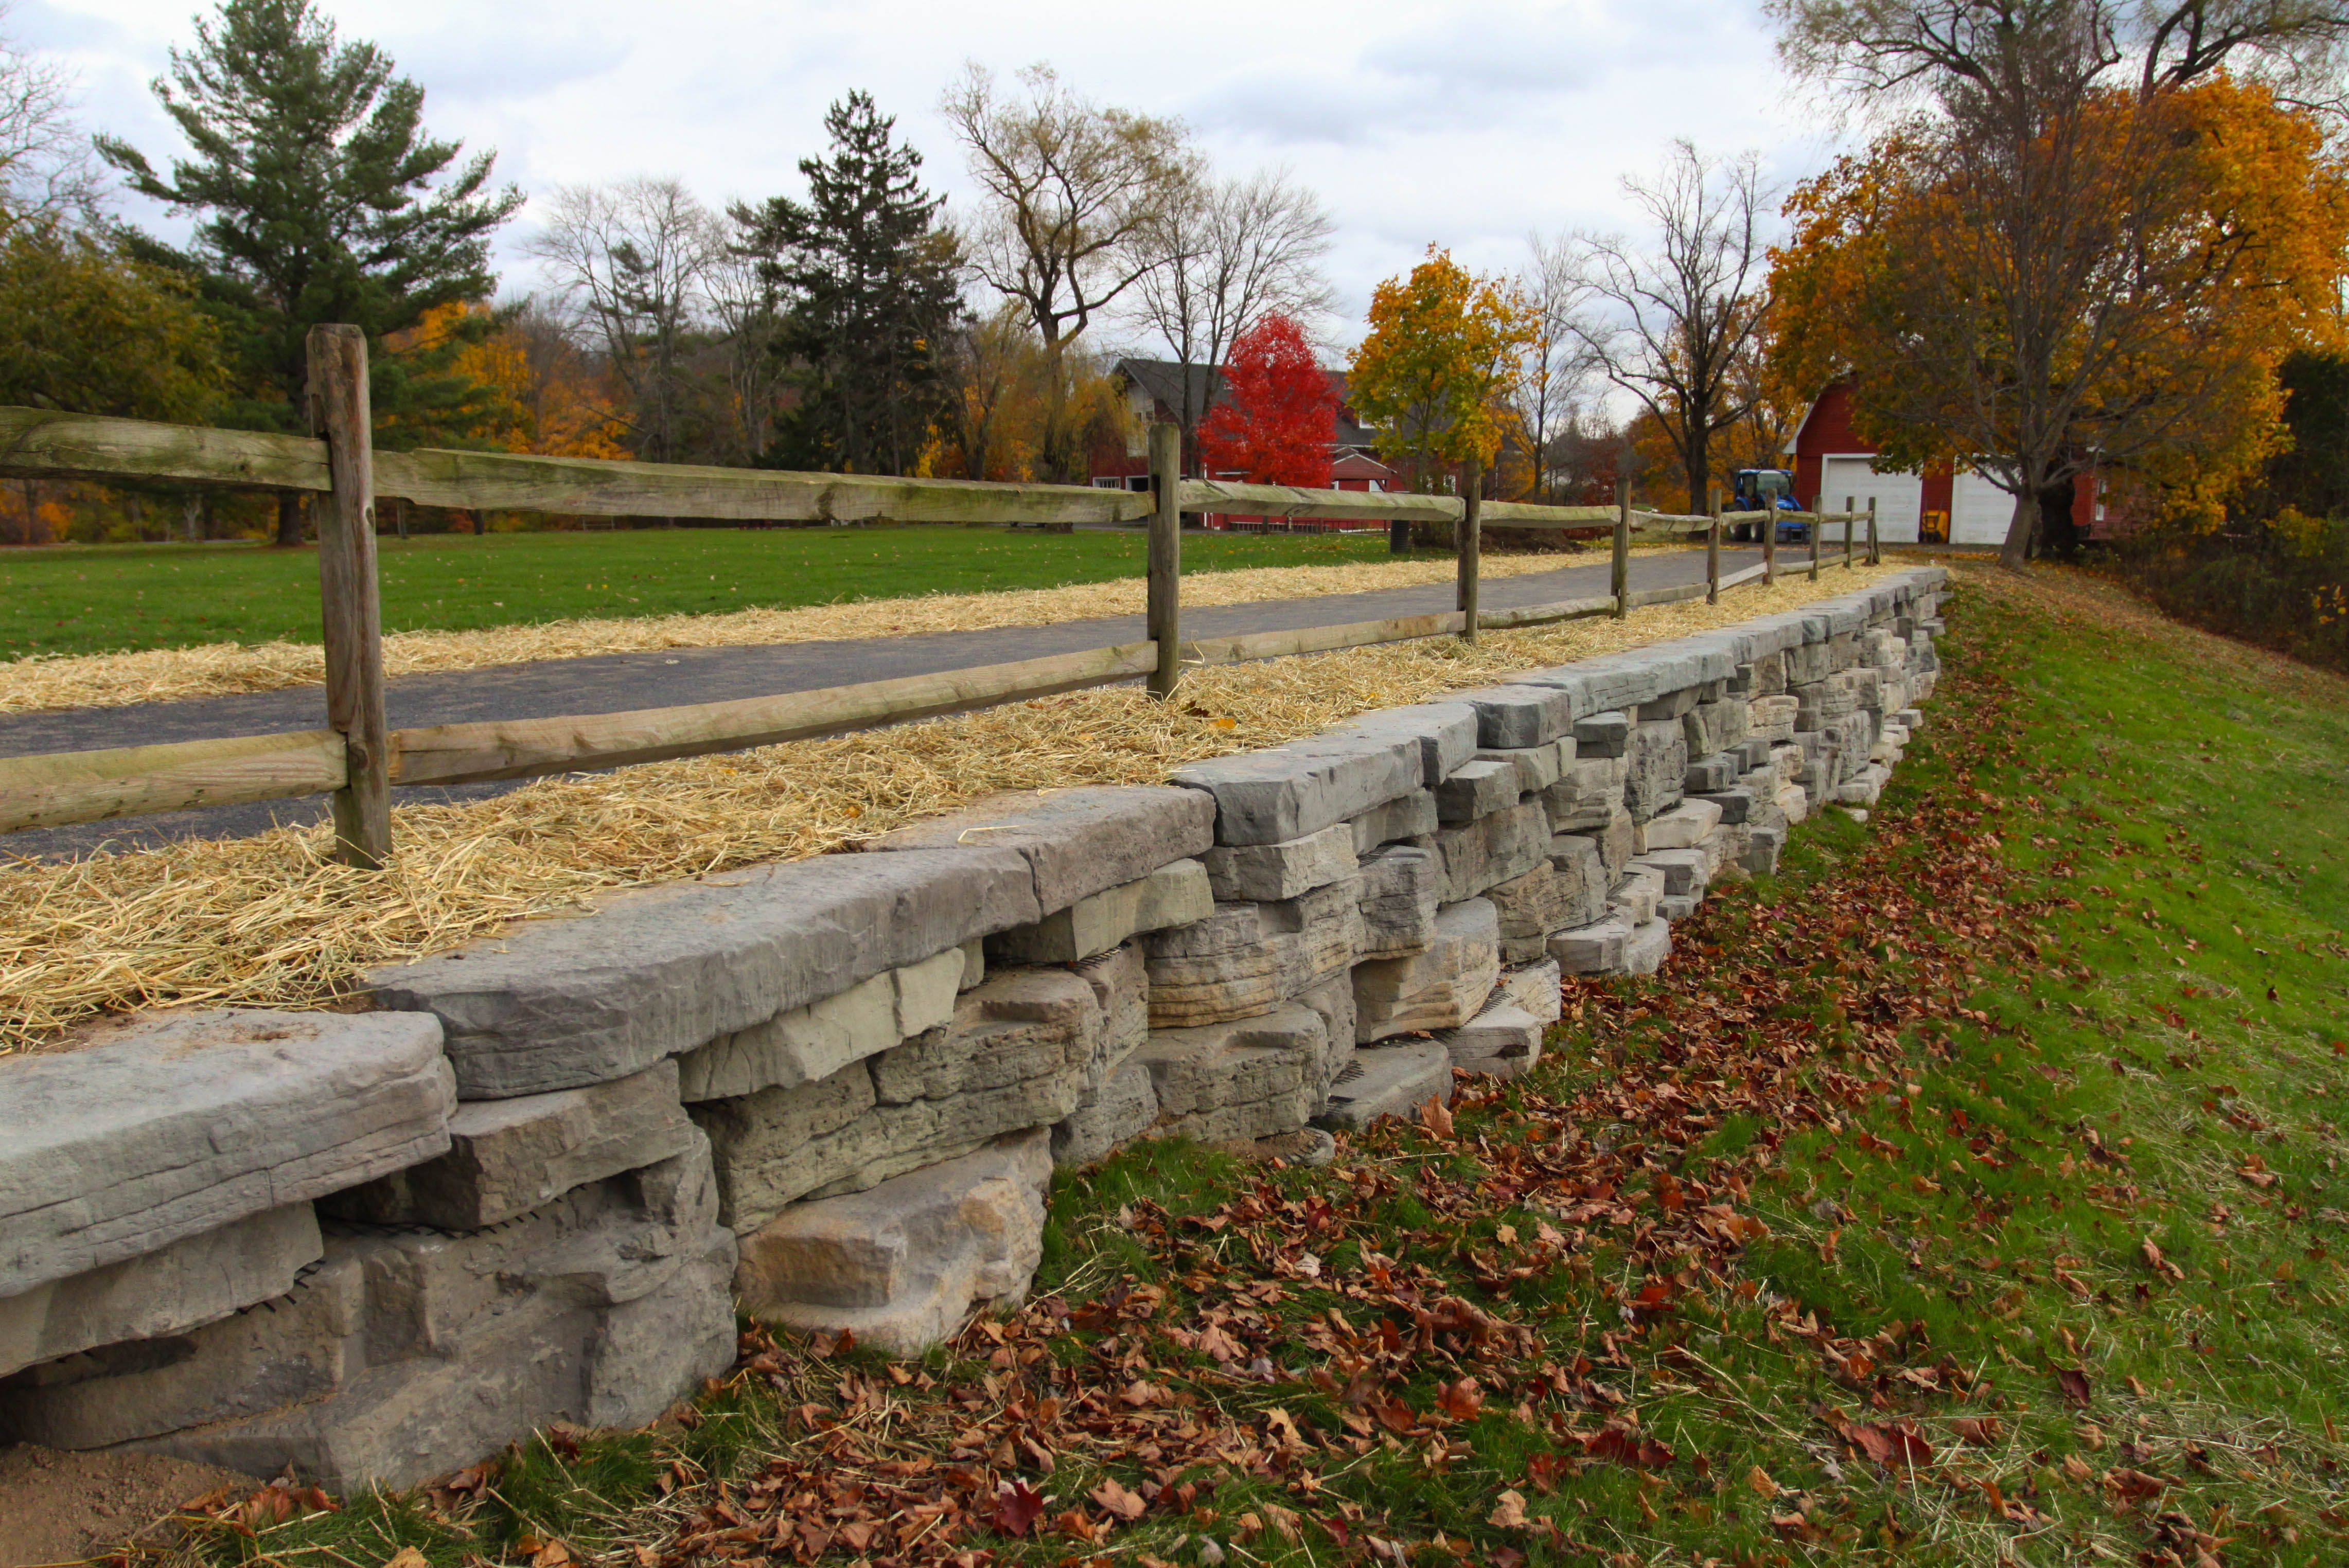 Rosetta Outcropping Retaining Wall New Paltz Ny The Colors Look Great In The Fall Retaining Wall Pre Retaining Wall Stone Retaining Wall Precast Concrete